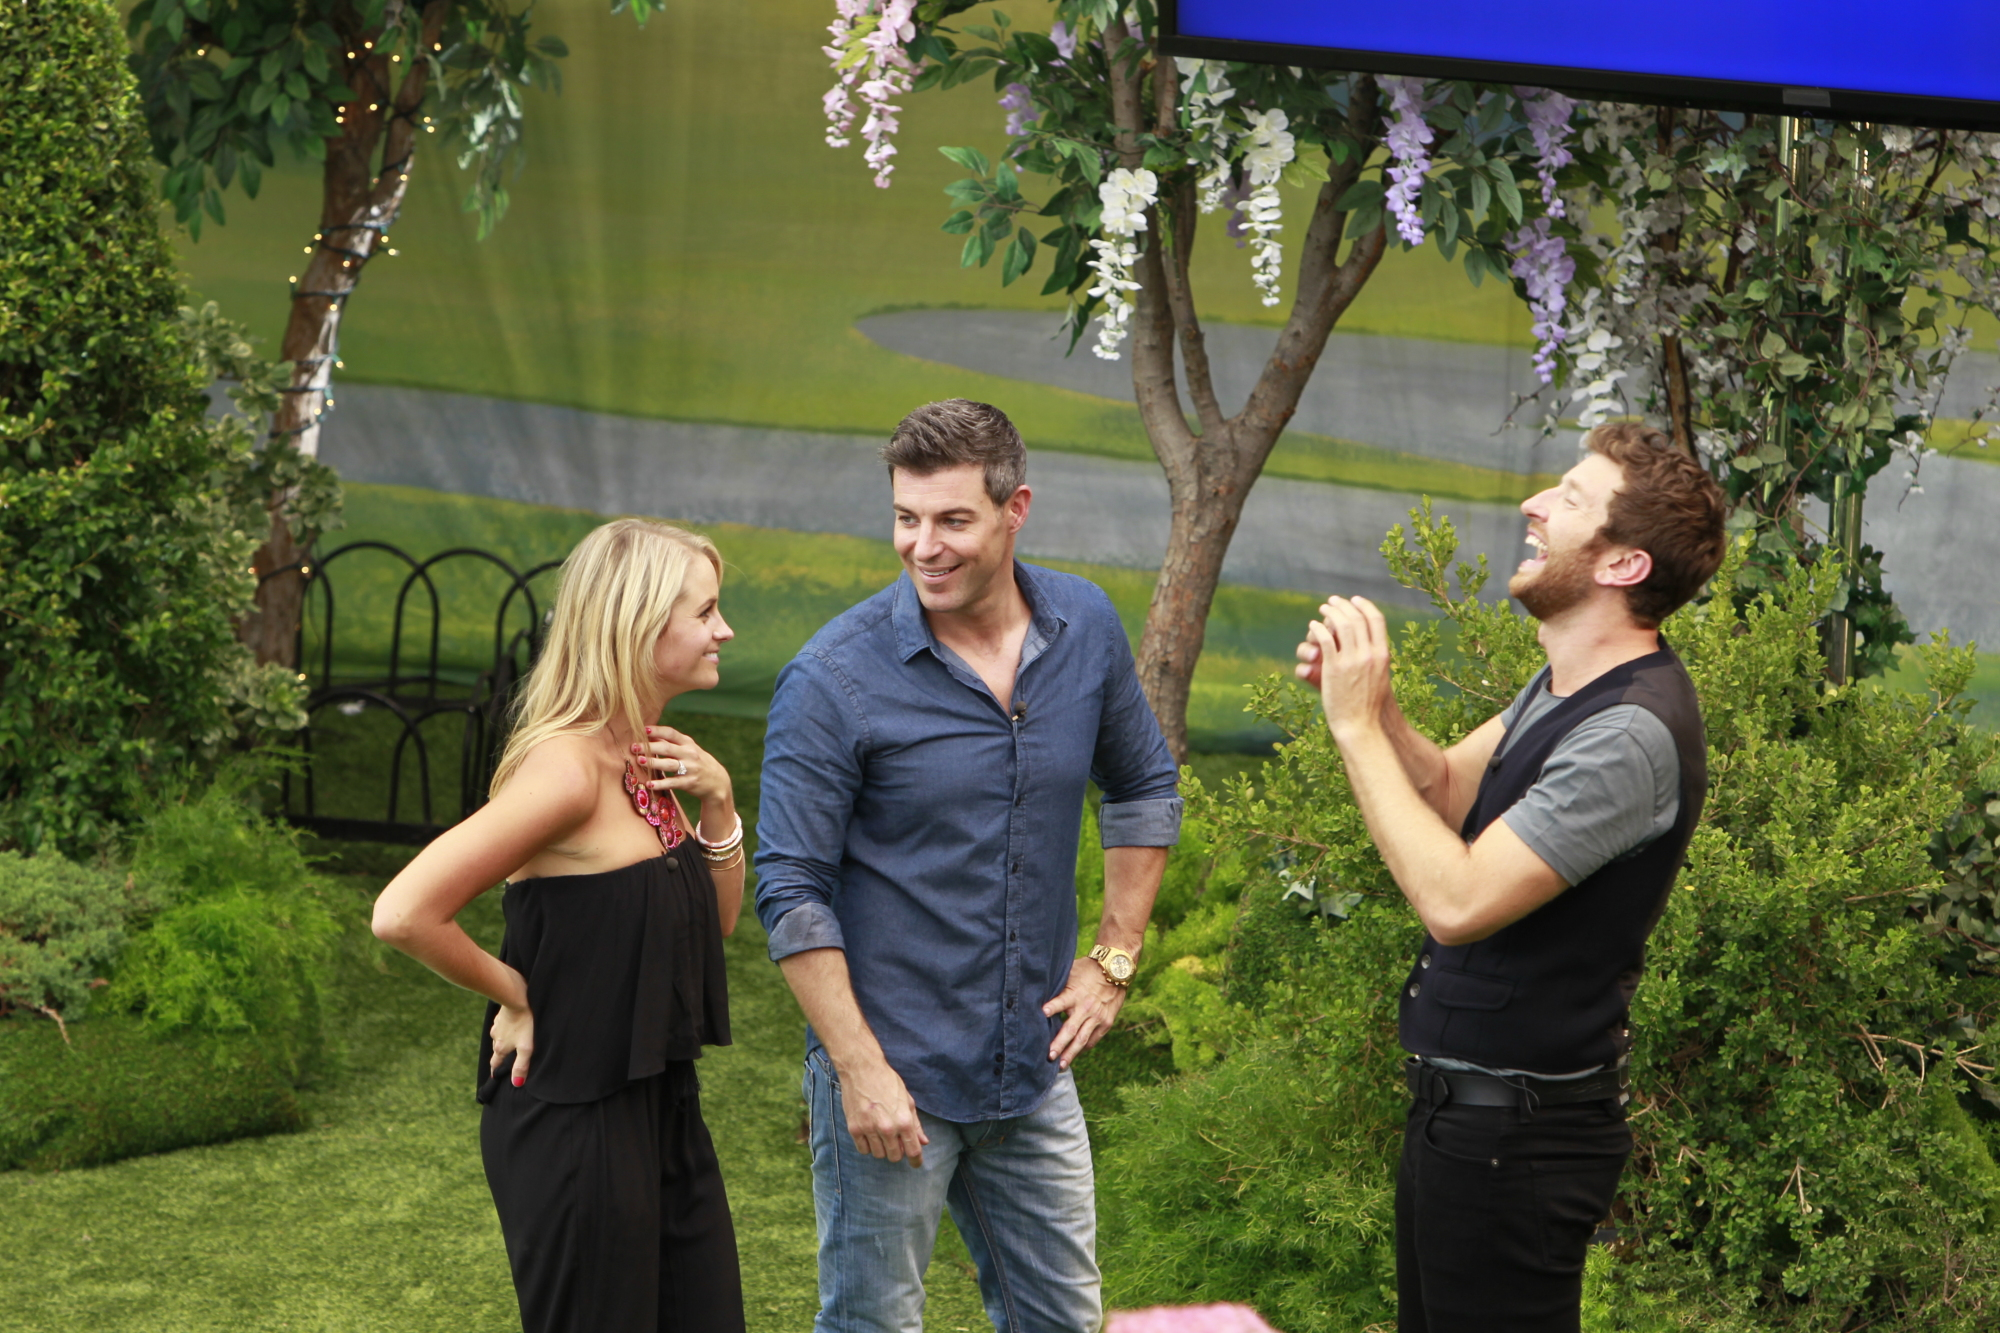 Jeff and Jordan meet country singer Brett Eldredge